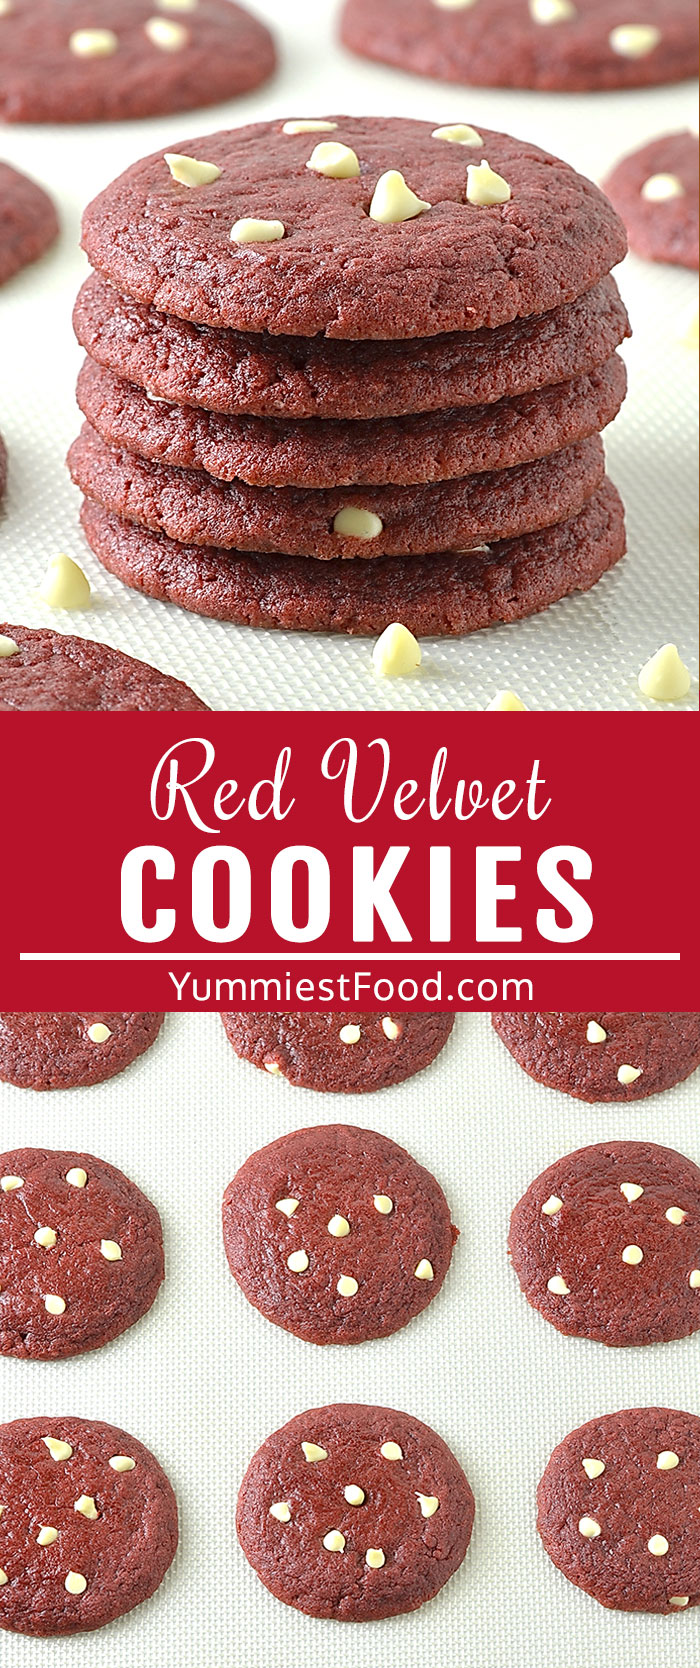 Red Velvet White Chocolate Chip Cookies is a special recipe for a special occasion Valentine's Day! They turn out soft and chewy with a beautiful red color makes them perfect for Valentine's Day or whenever you are craving red velvet! #valentines #valentinesday #valentinesfood #valentinestreats #desserts #valentinescookies #cookies #easycookies #redvelvetcookies